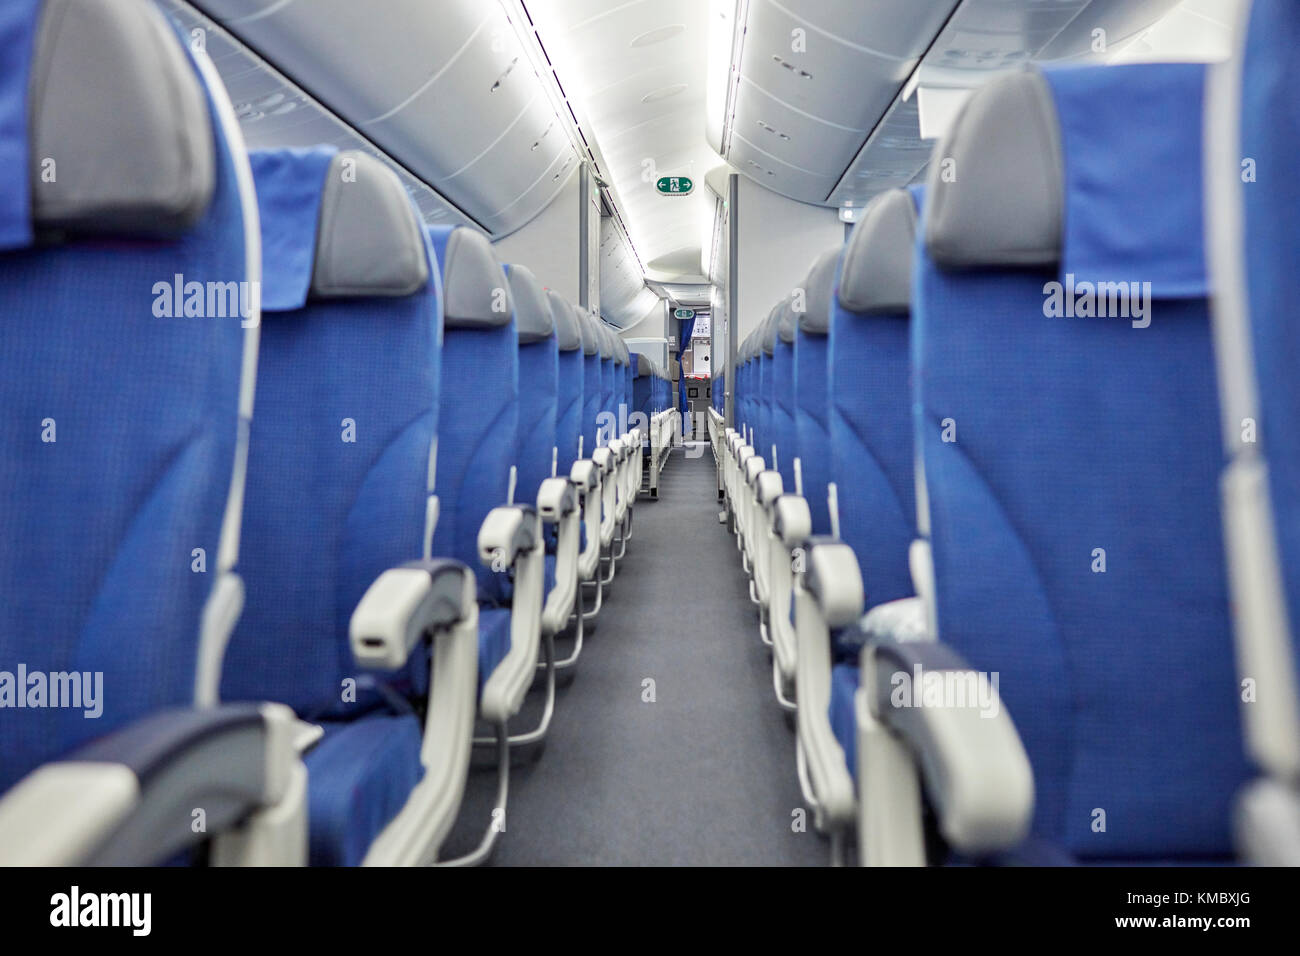 Empty blue seats in a row in airplane - Stock Image